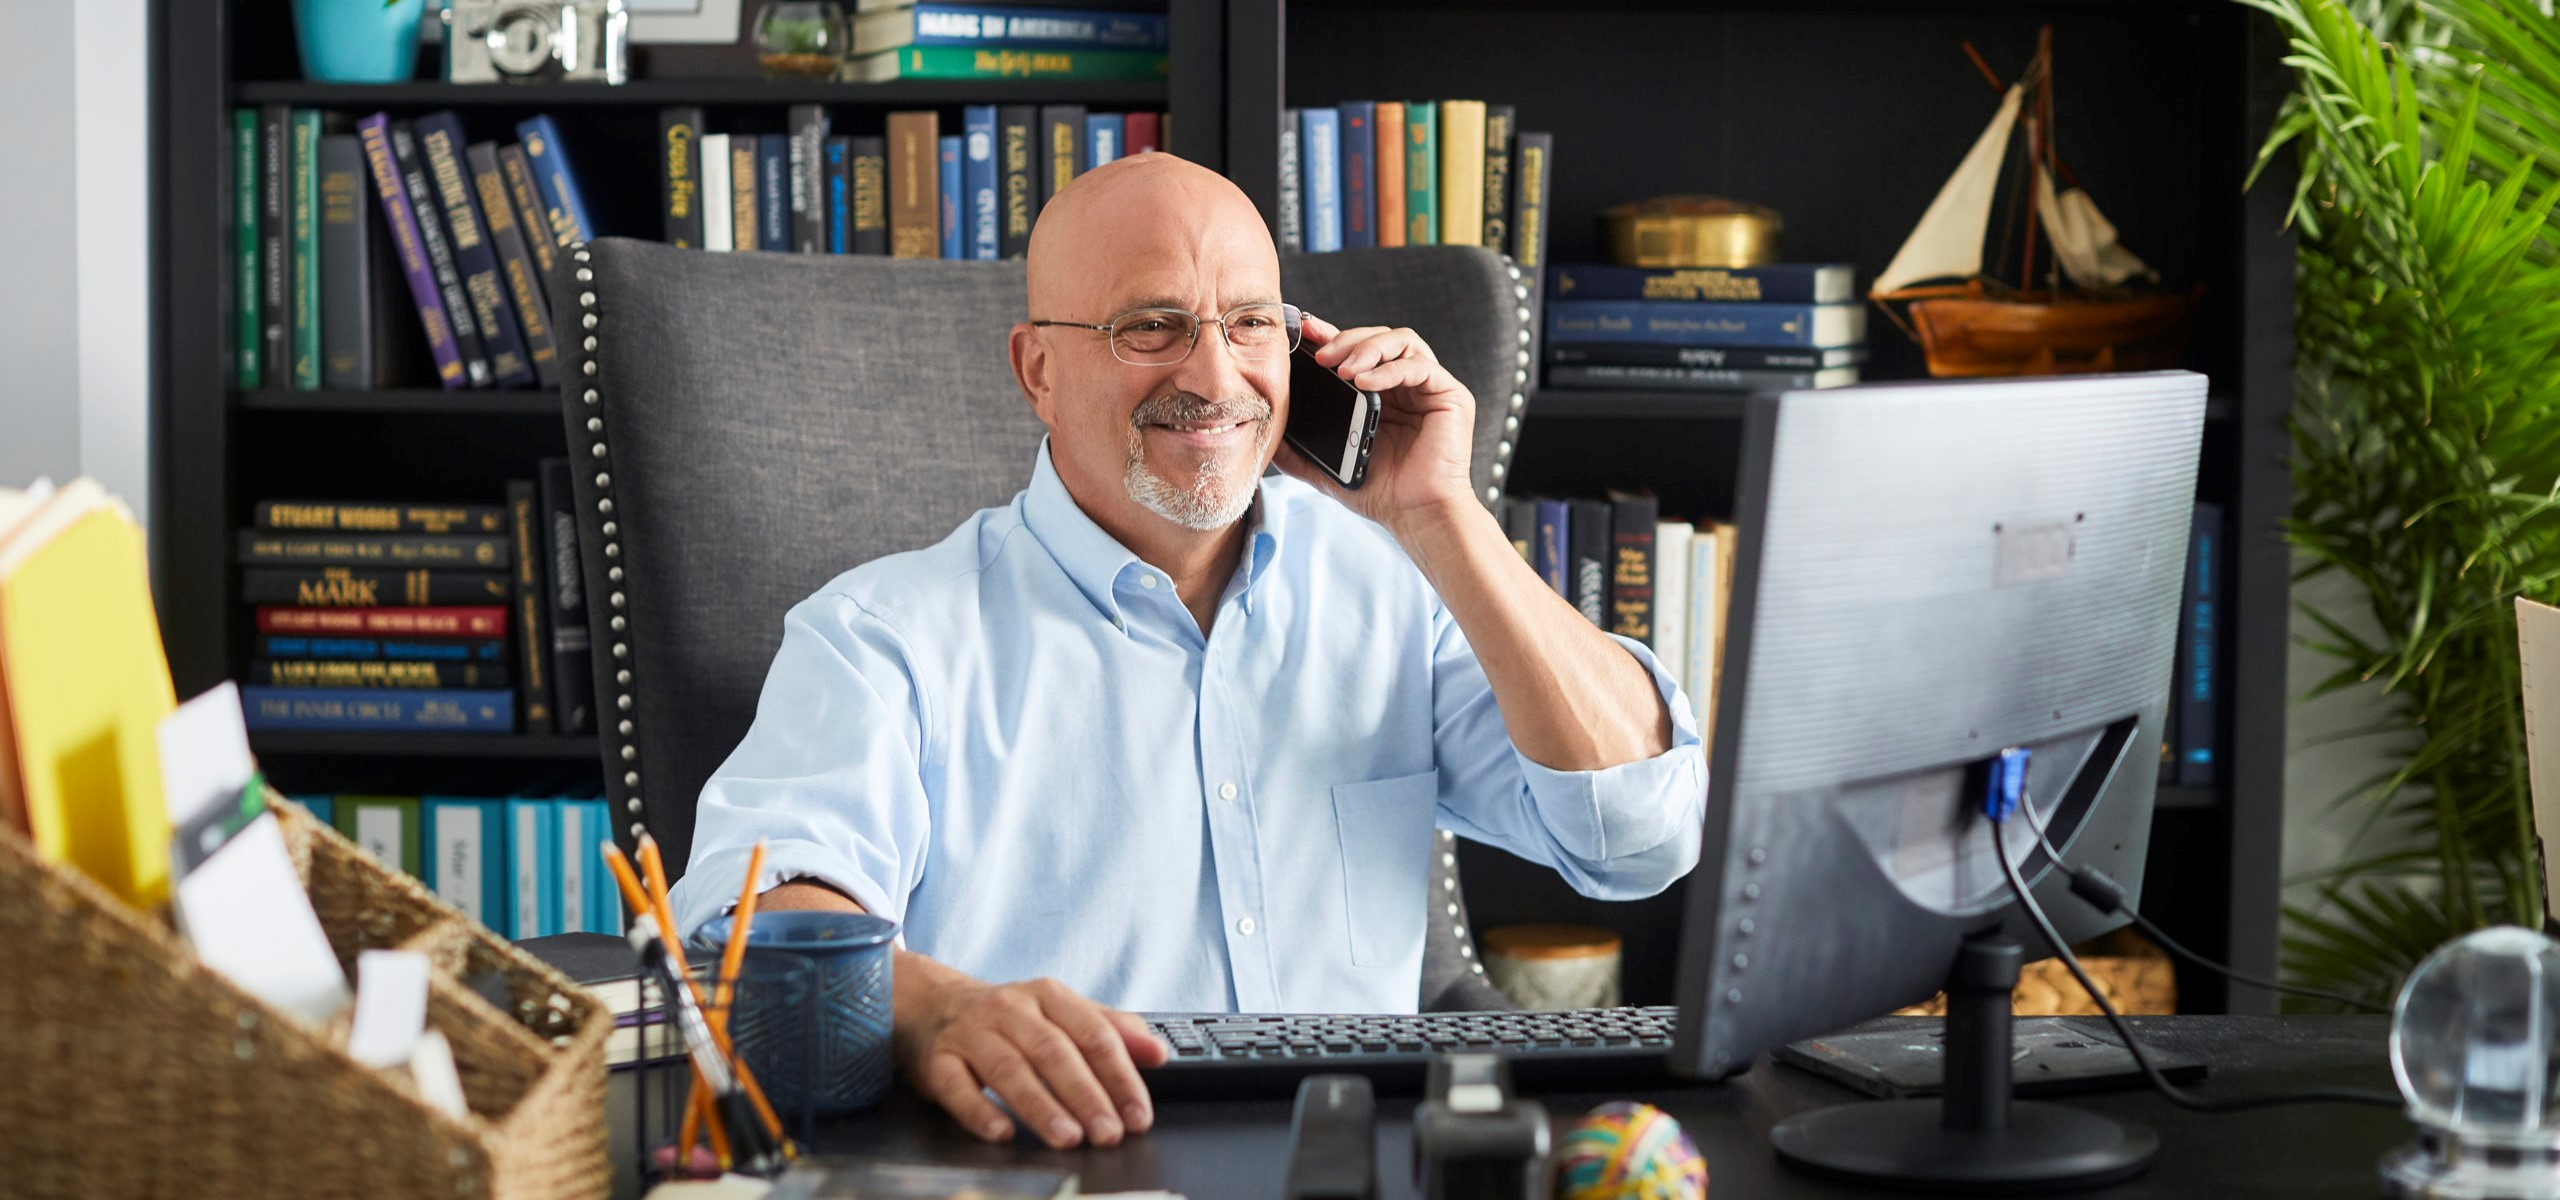 Man in his 60s smiling takes a phone call in front of his computer monitor